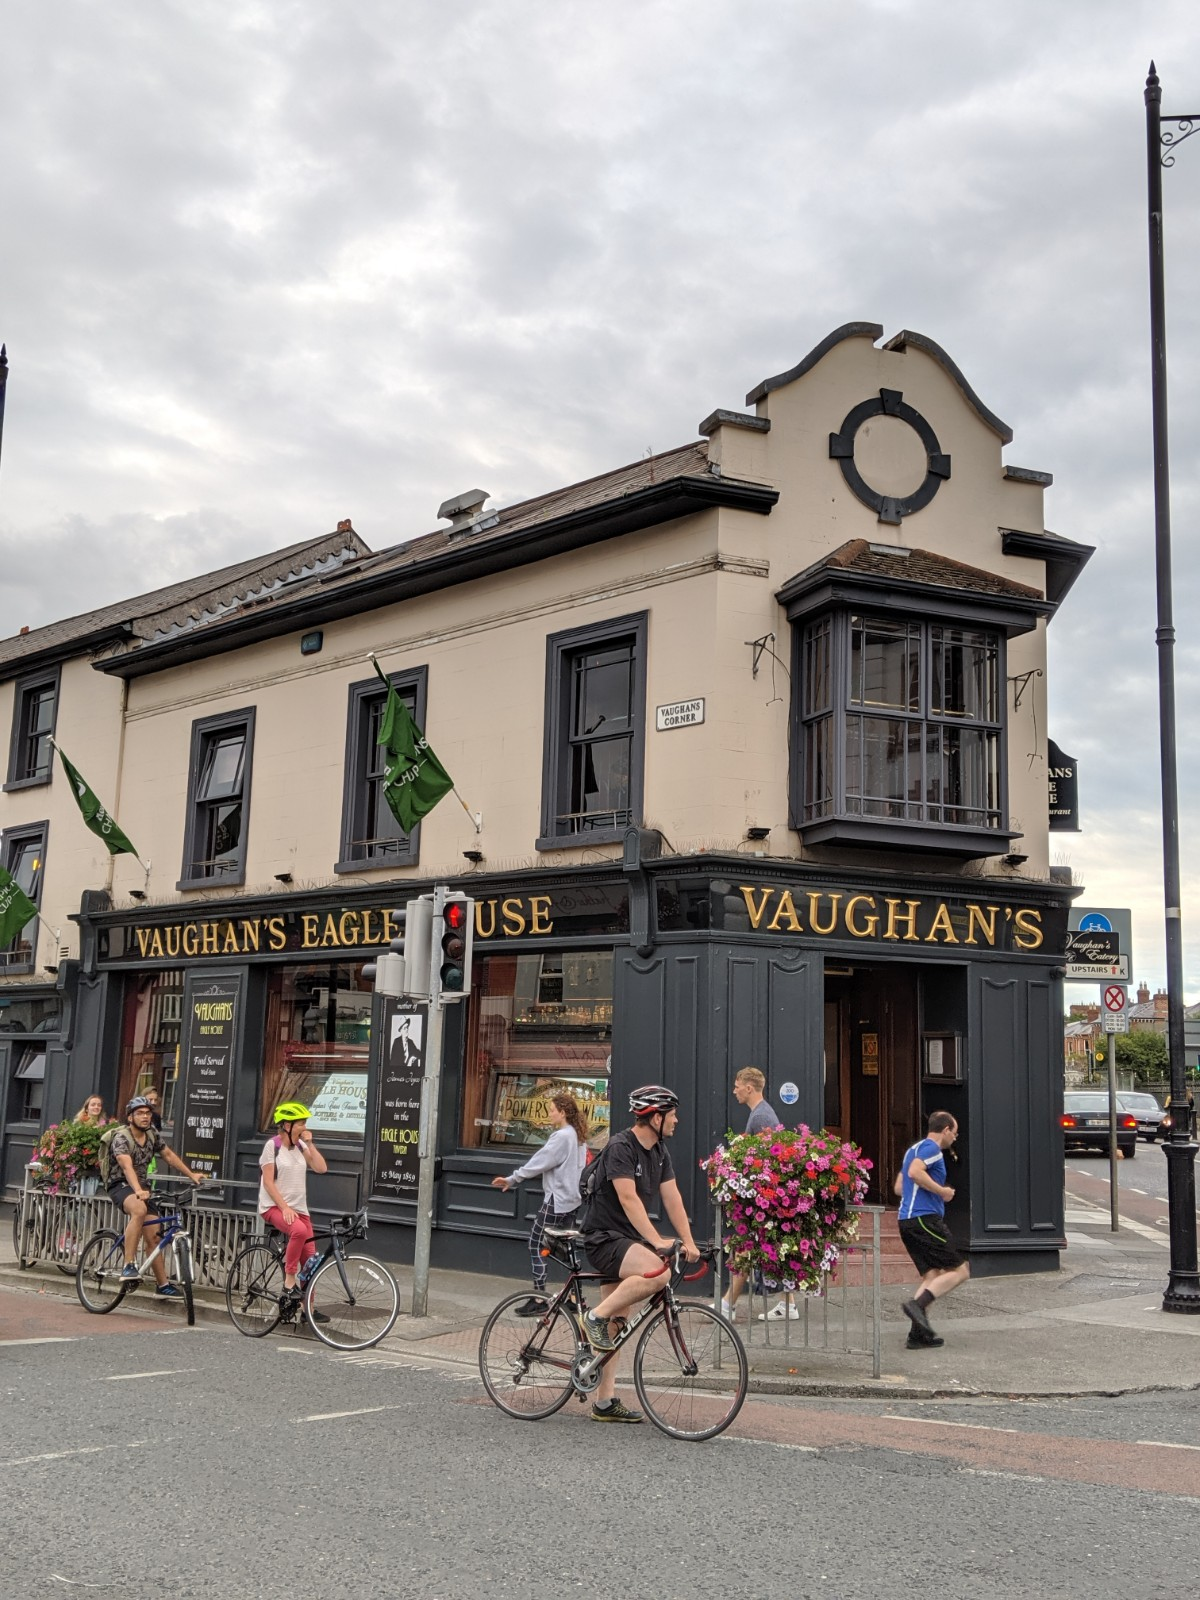 Vaughn's was one of the coolest pubs I visited while in Dublin. The bartender at Vaughn's introduced me to a local Irish Hooker. I couldn't help myself and succumbed to this earthly pleasure.